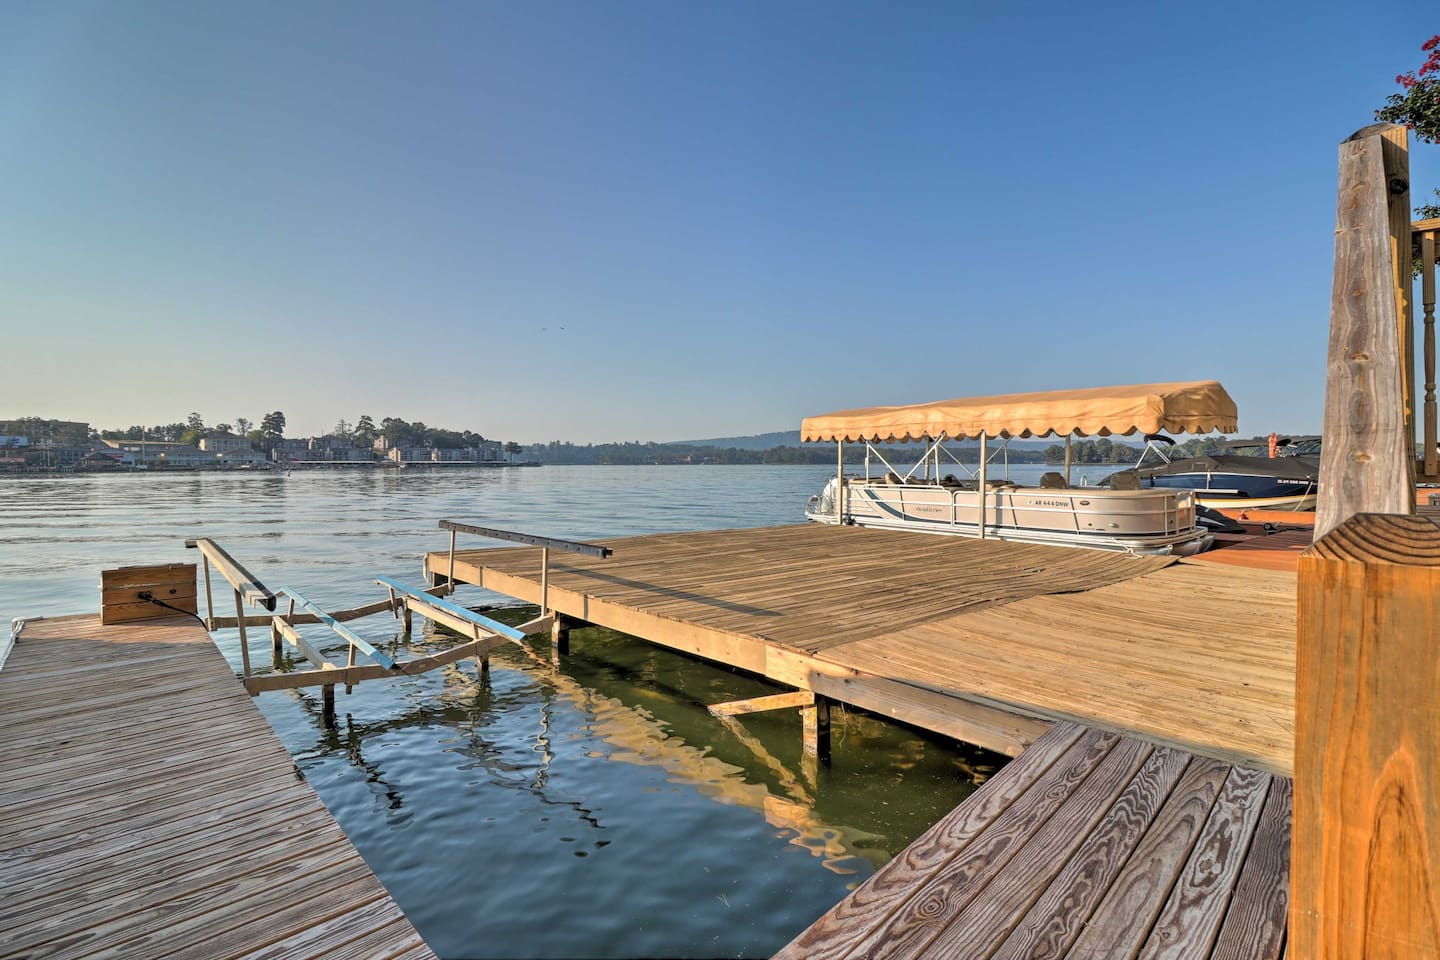 Lake days await with other attractions ready for your arrival as well.